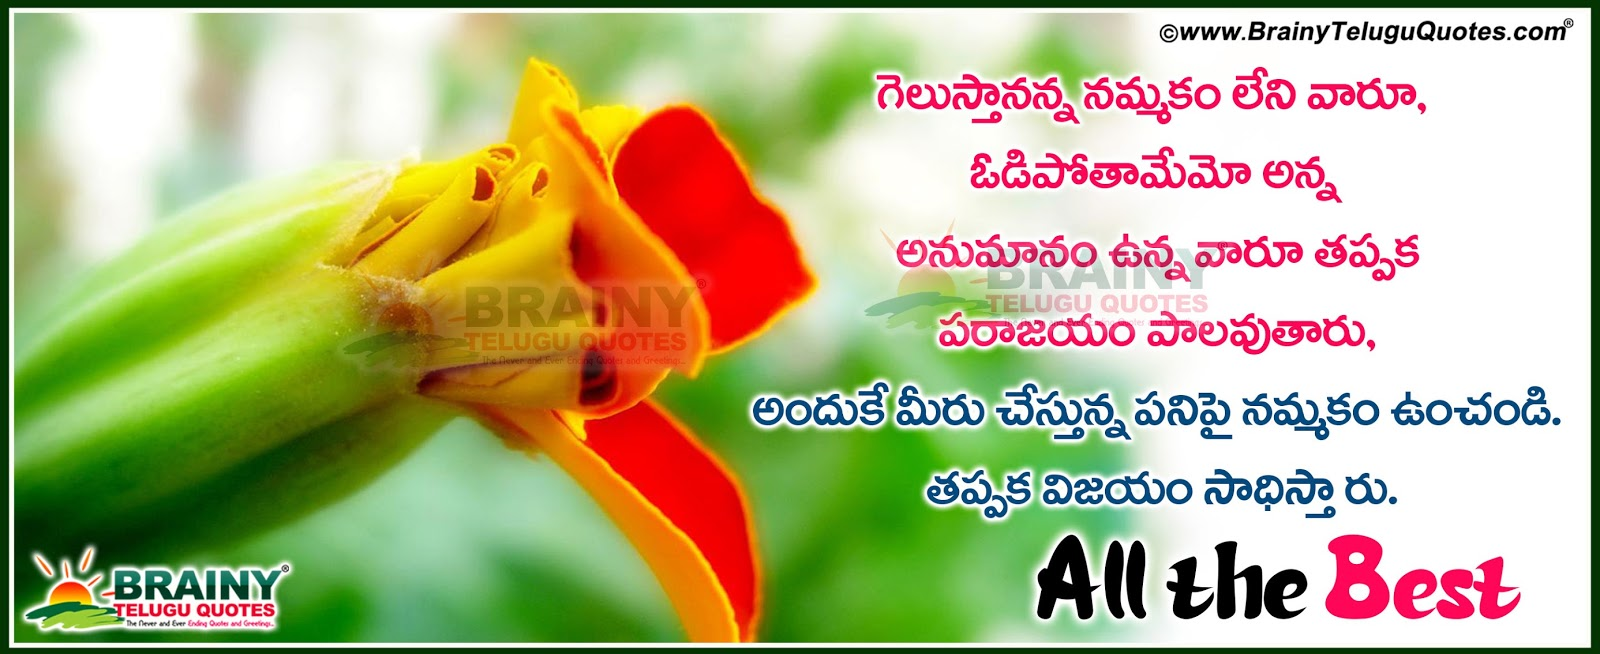 Telugu quotations and greetings wishes for all the best facebook inspirational quotes in telugu for facebook cover picsfriendship quotes for facebook cover pics kristyandbryce Image collections